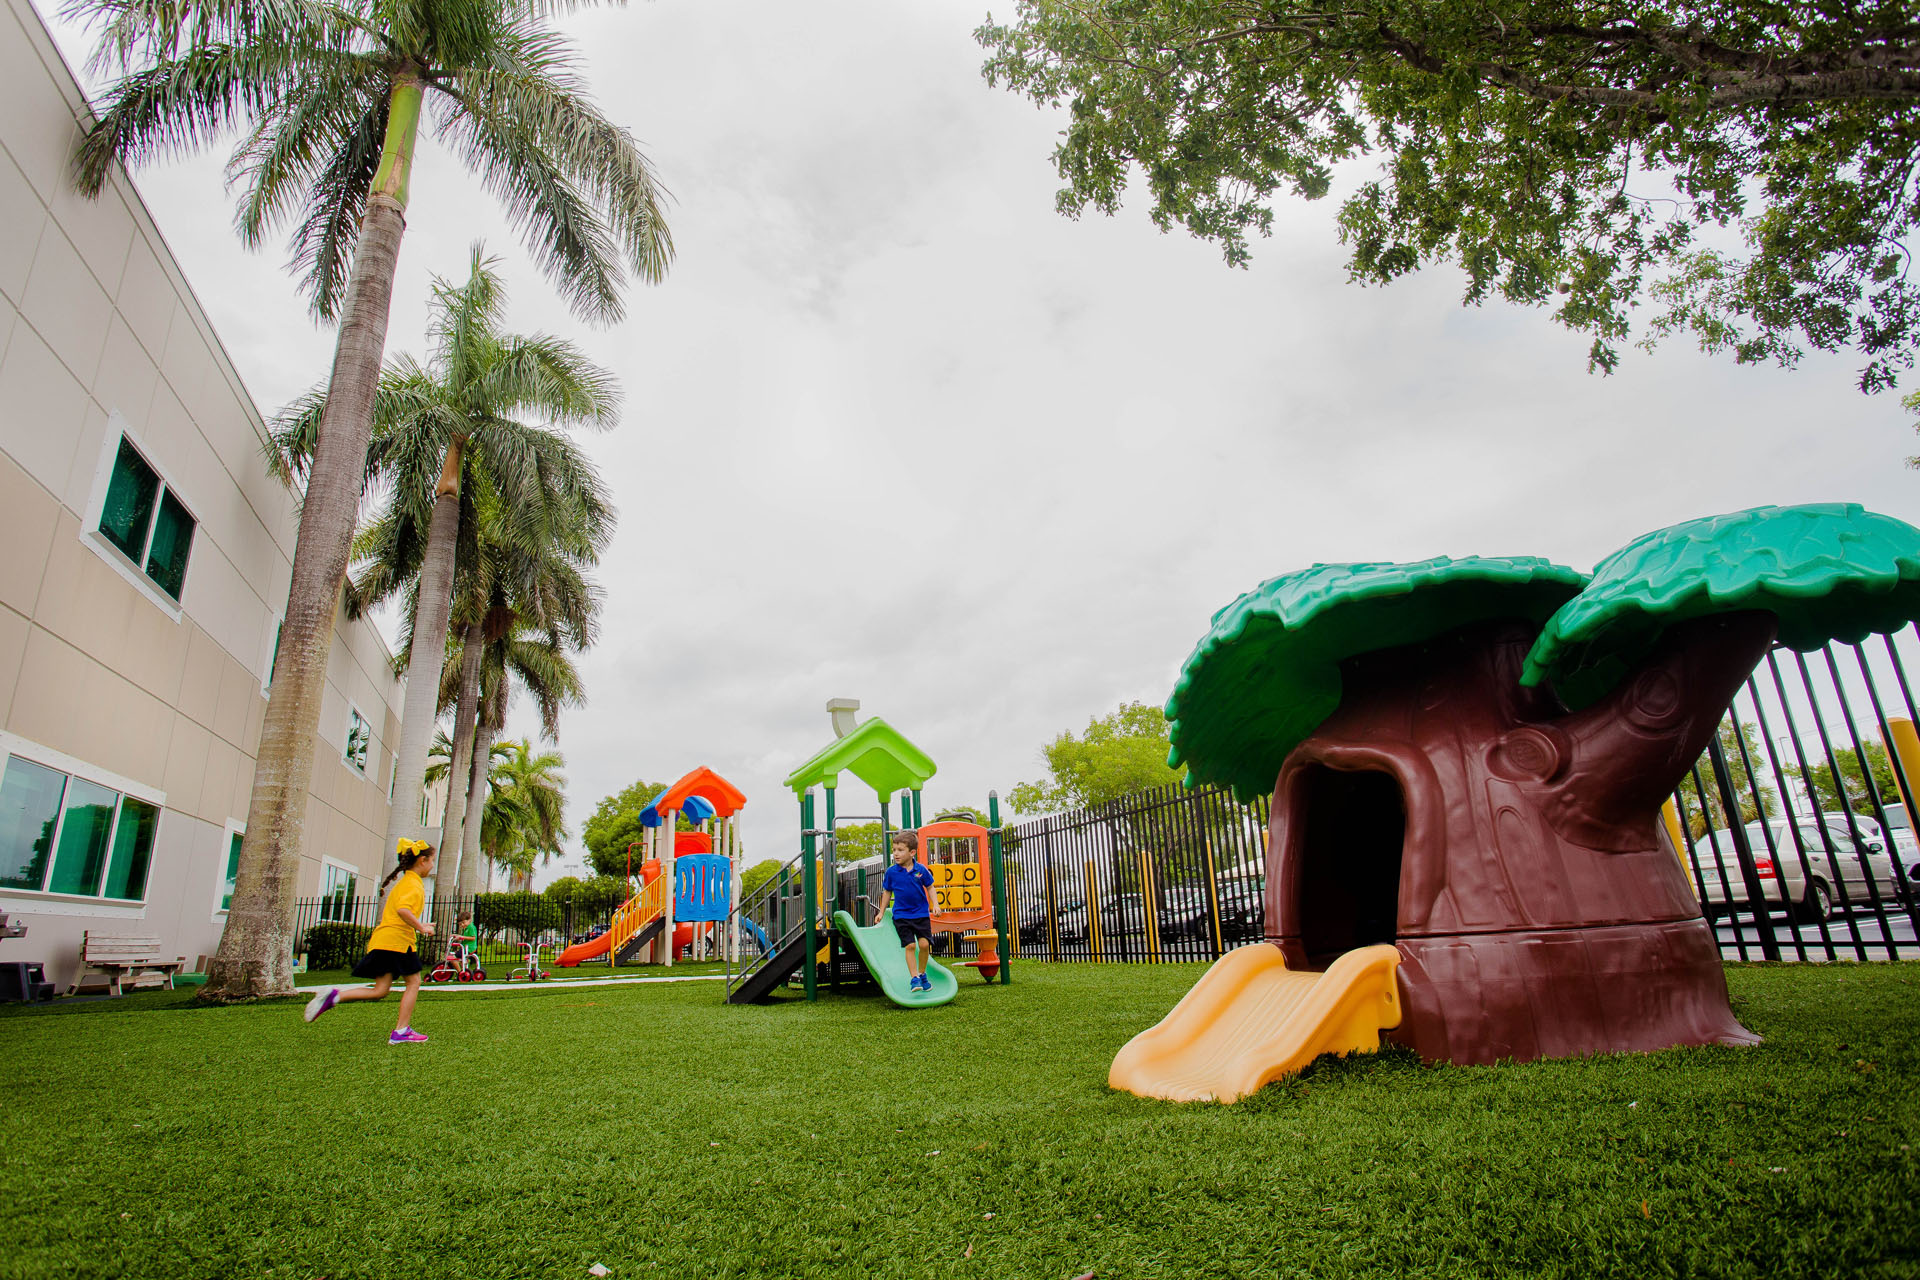 Child Care Centers and Preschools in Doral FL